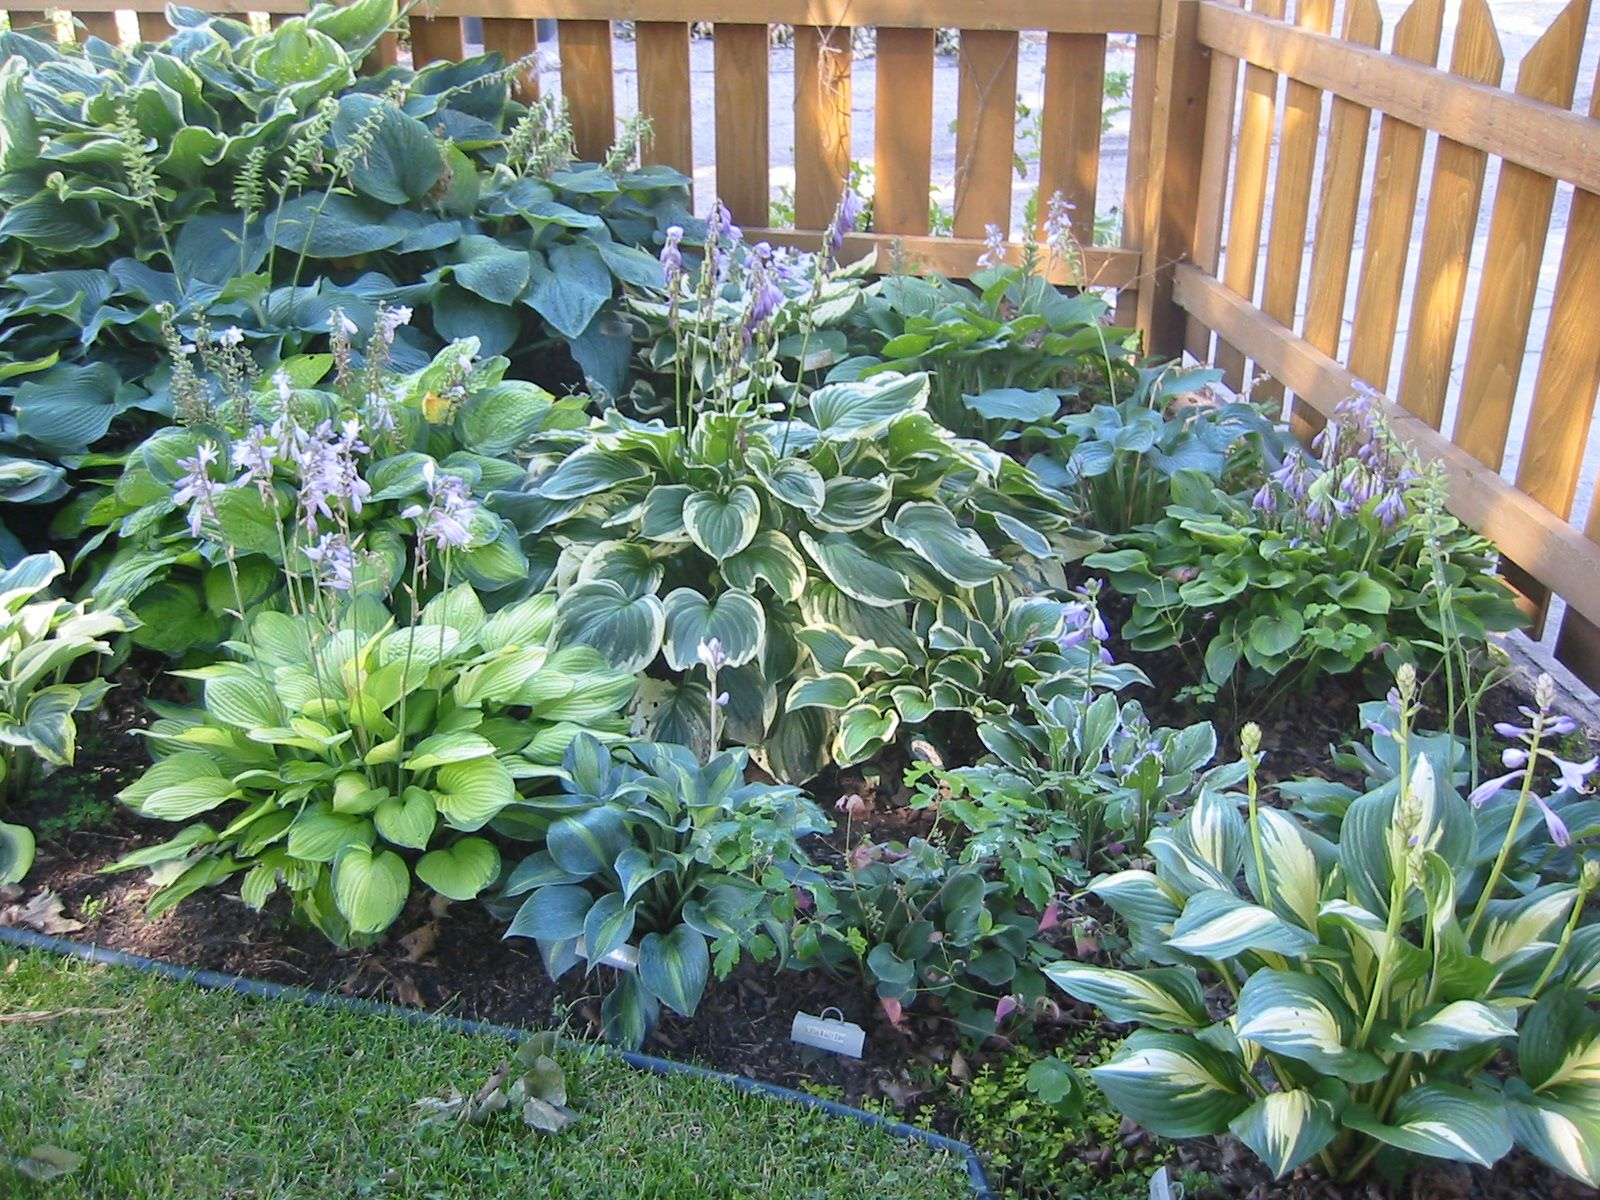 More Hosta Garden Ideas For Out Shady Backyard.